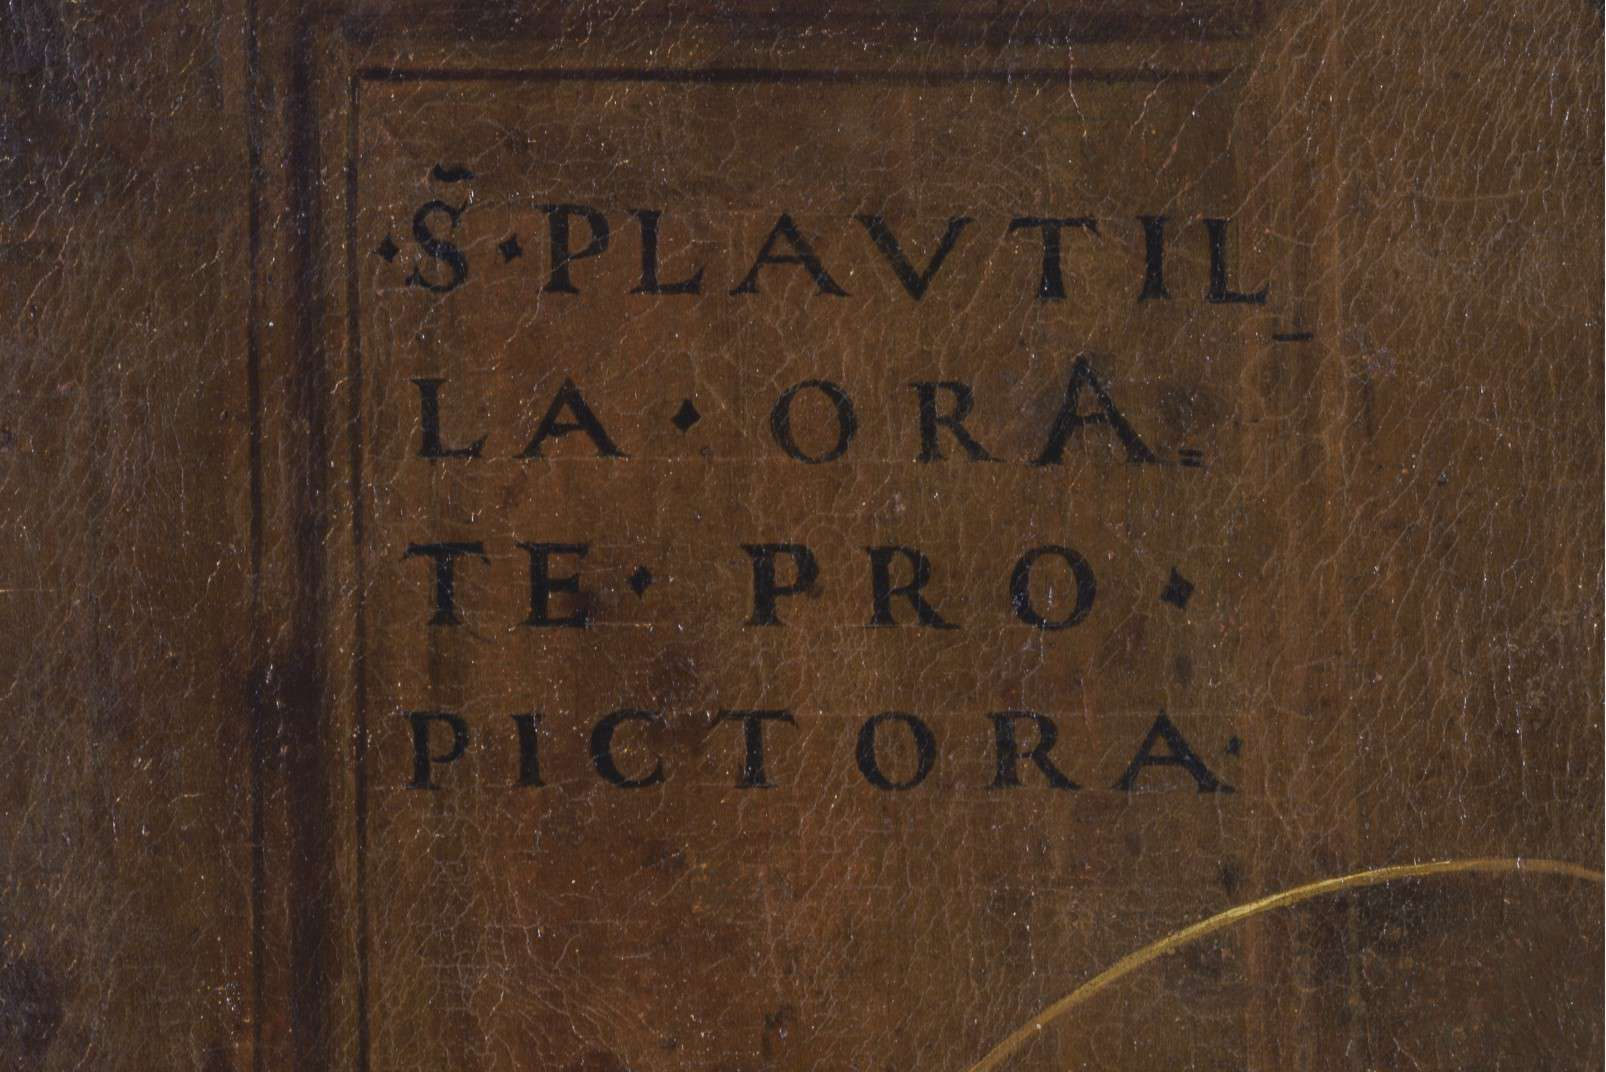 Last Supper by Plautilla Nelli - Adopt an Apostle - Detail of the paintress's signature and motto